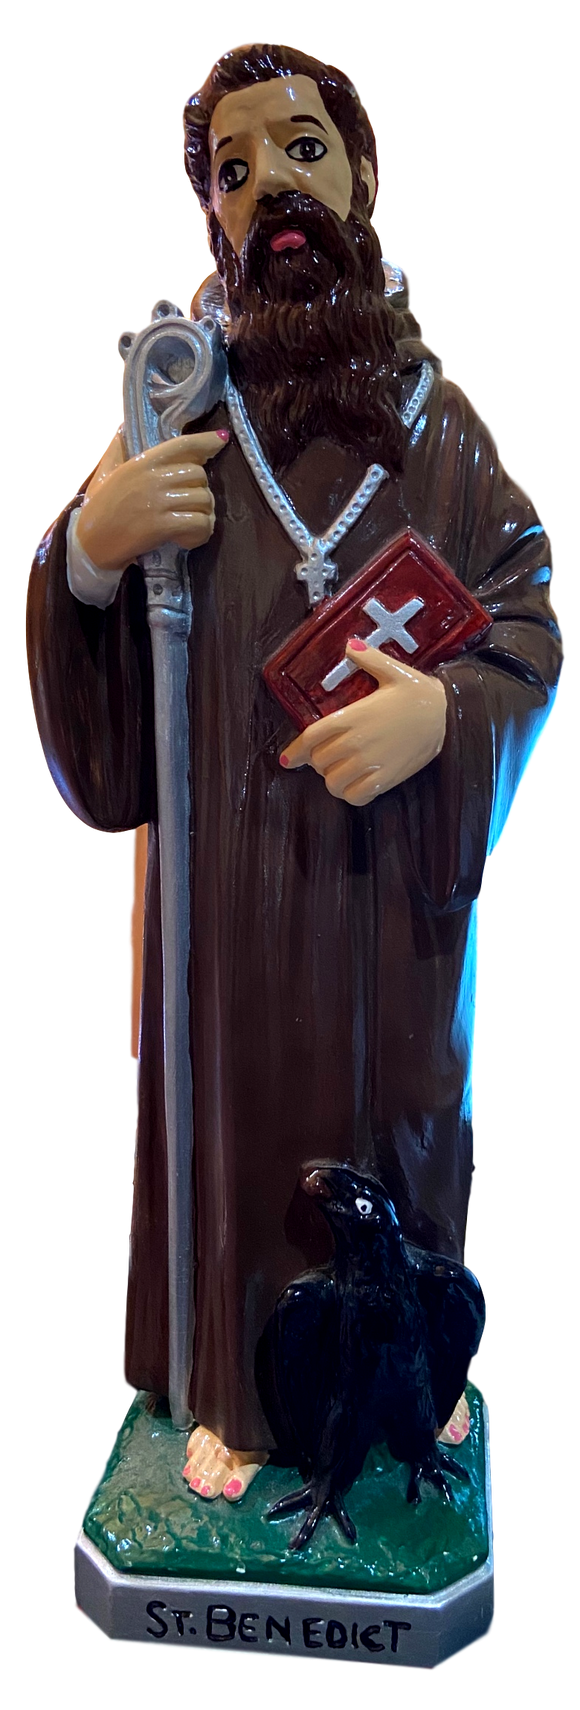 Statue Saint Benedict With Crow, Bible, Rosary and Staff 1958 Vintage Chalkware